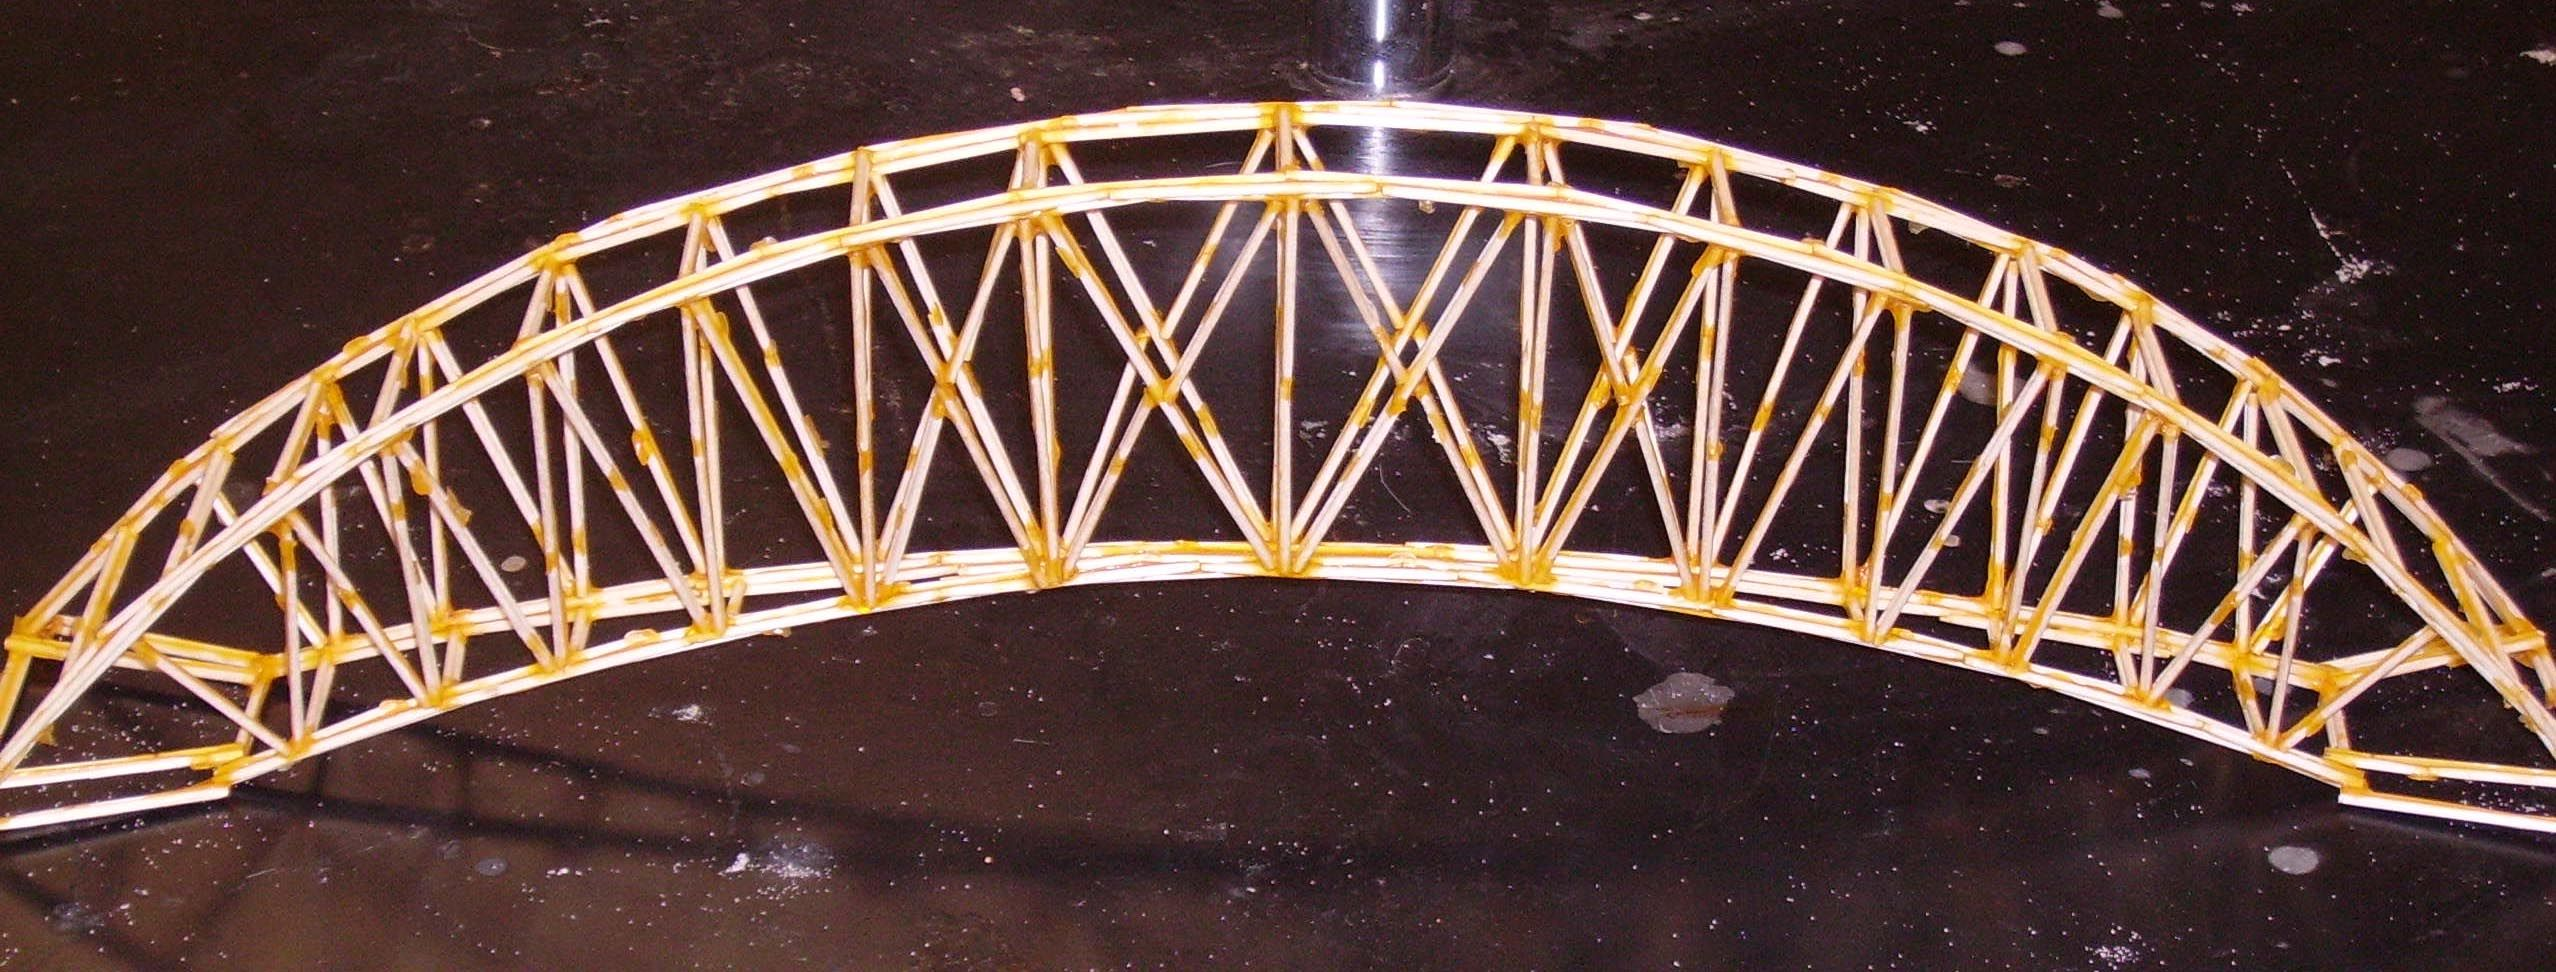 Toothpick Truss Bridge Places To Visit Pinterest Bridge Stem